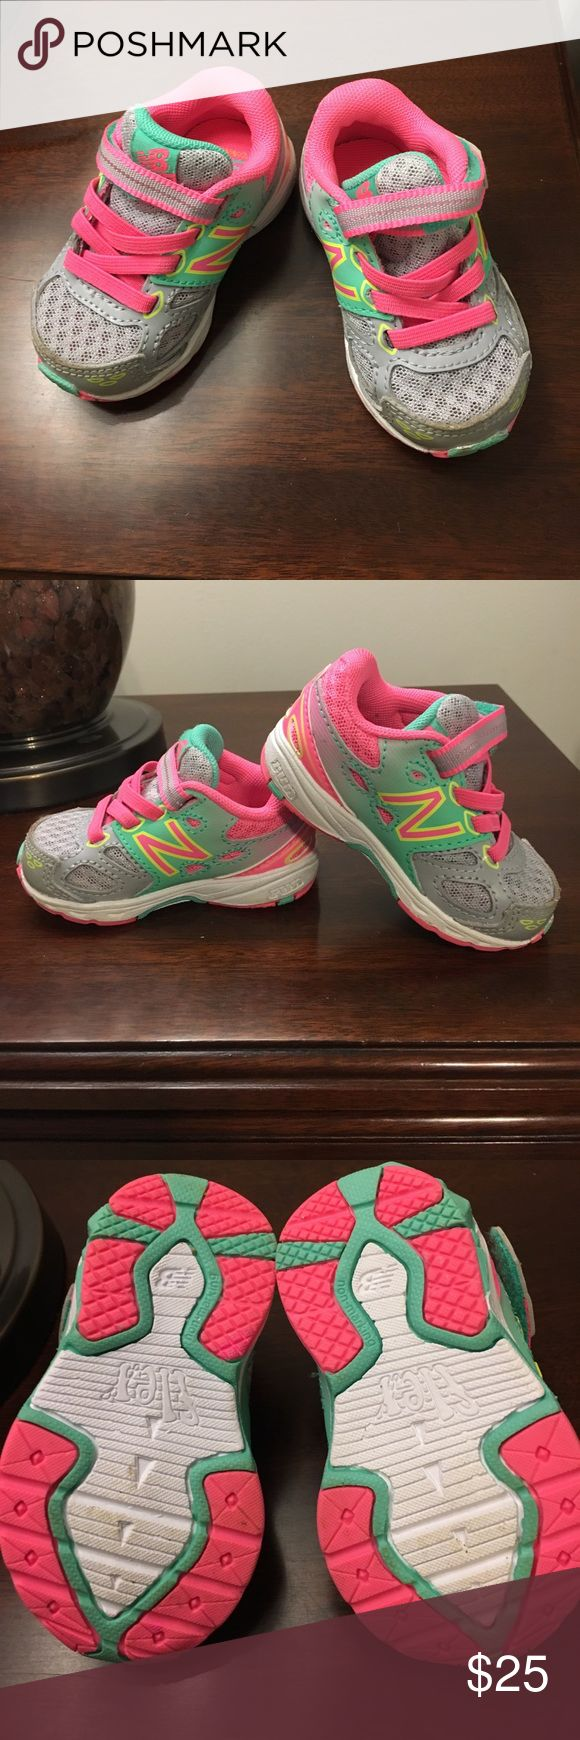 Infant size 3 New Balance - pink/gray/green Infant sneakers - size 3 New Balance - pink/gray/green, excellent used condition!  Hardly any wear on soles, bought them right before a growth spurt hit, so she only wore them a handful of times.  #greatjobmom ☺️ New Balance Shoes Sneakers